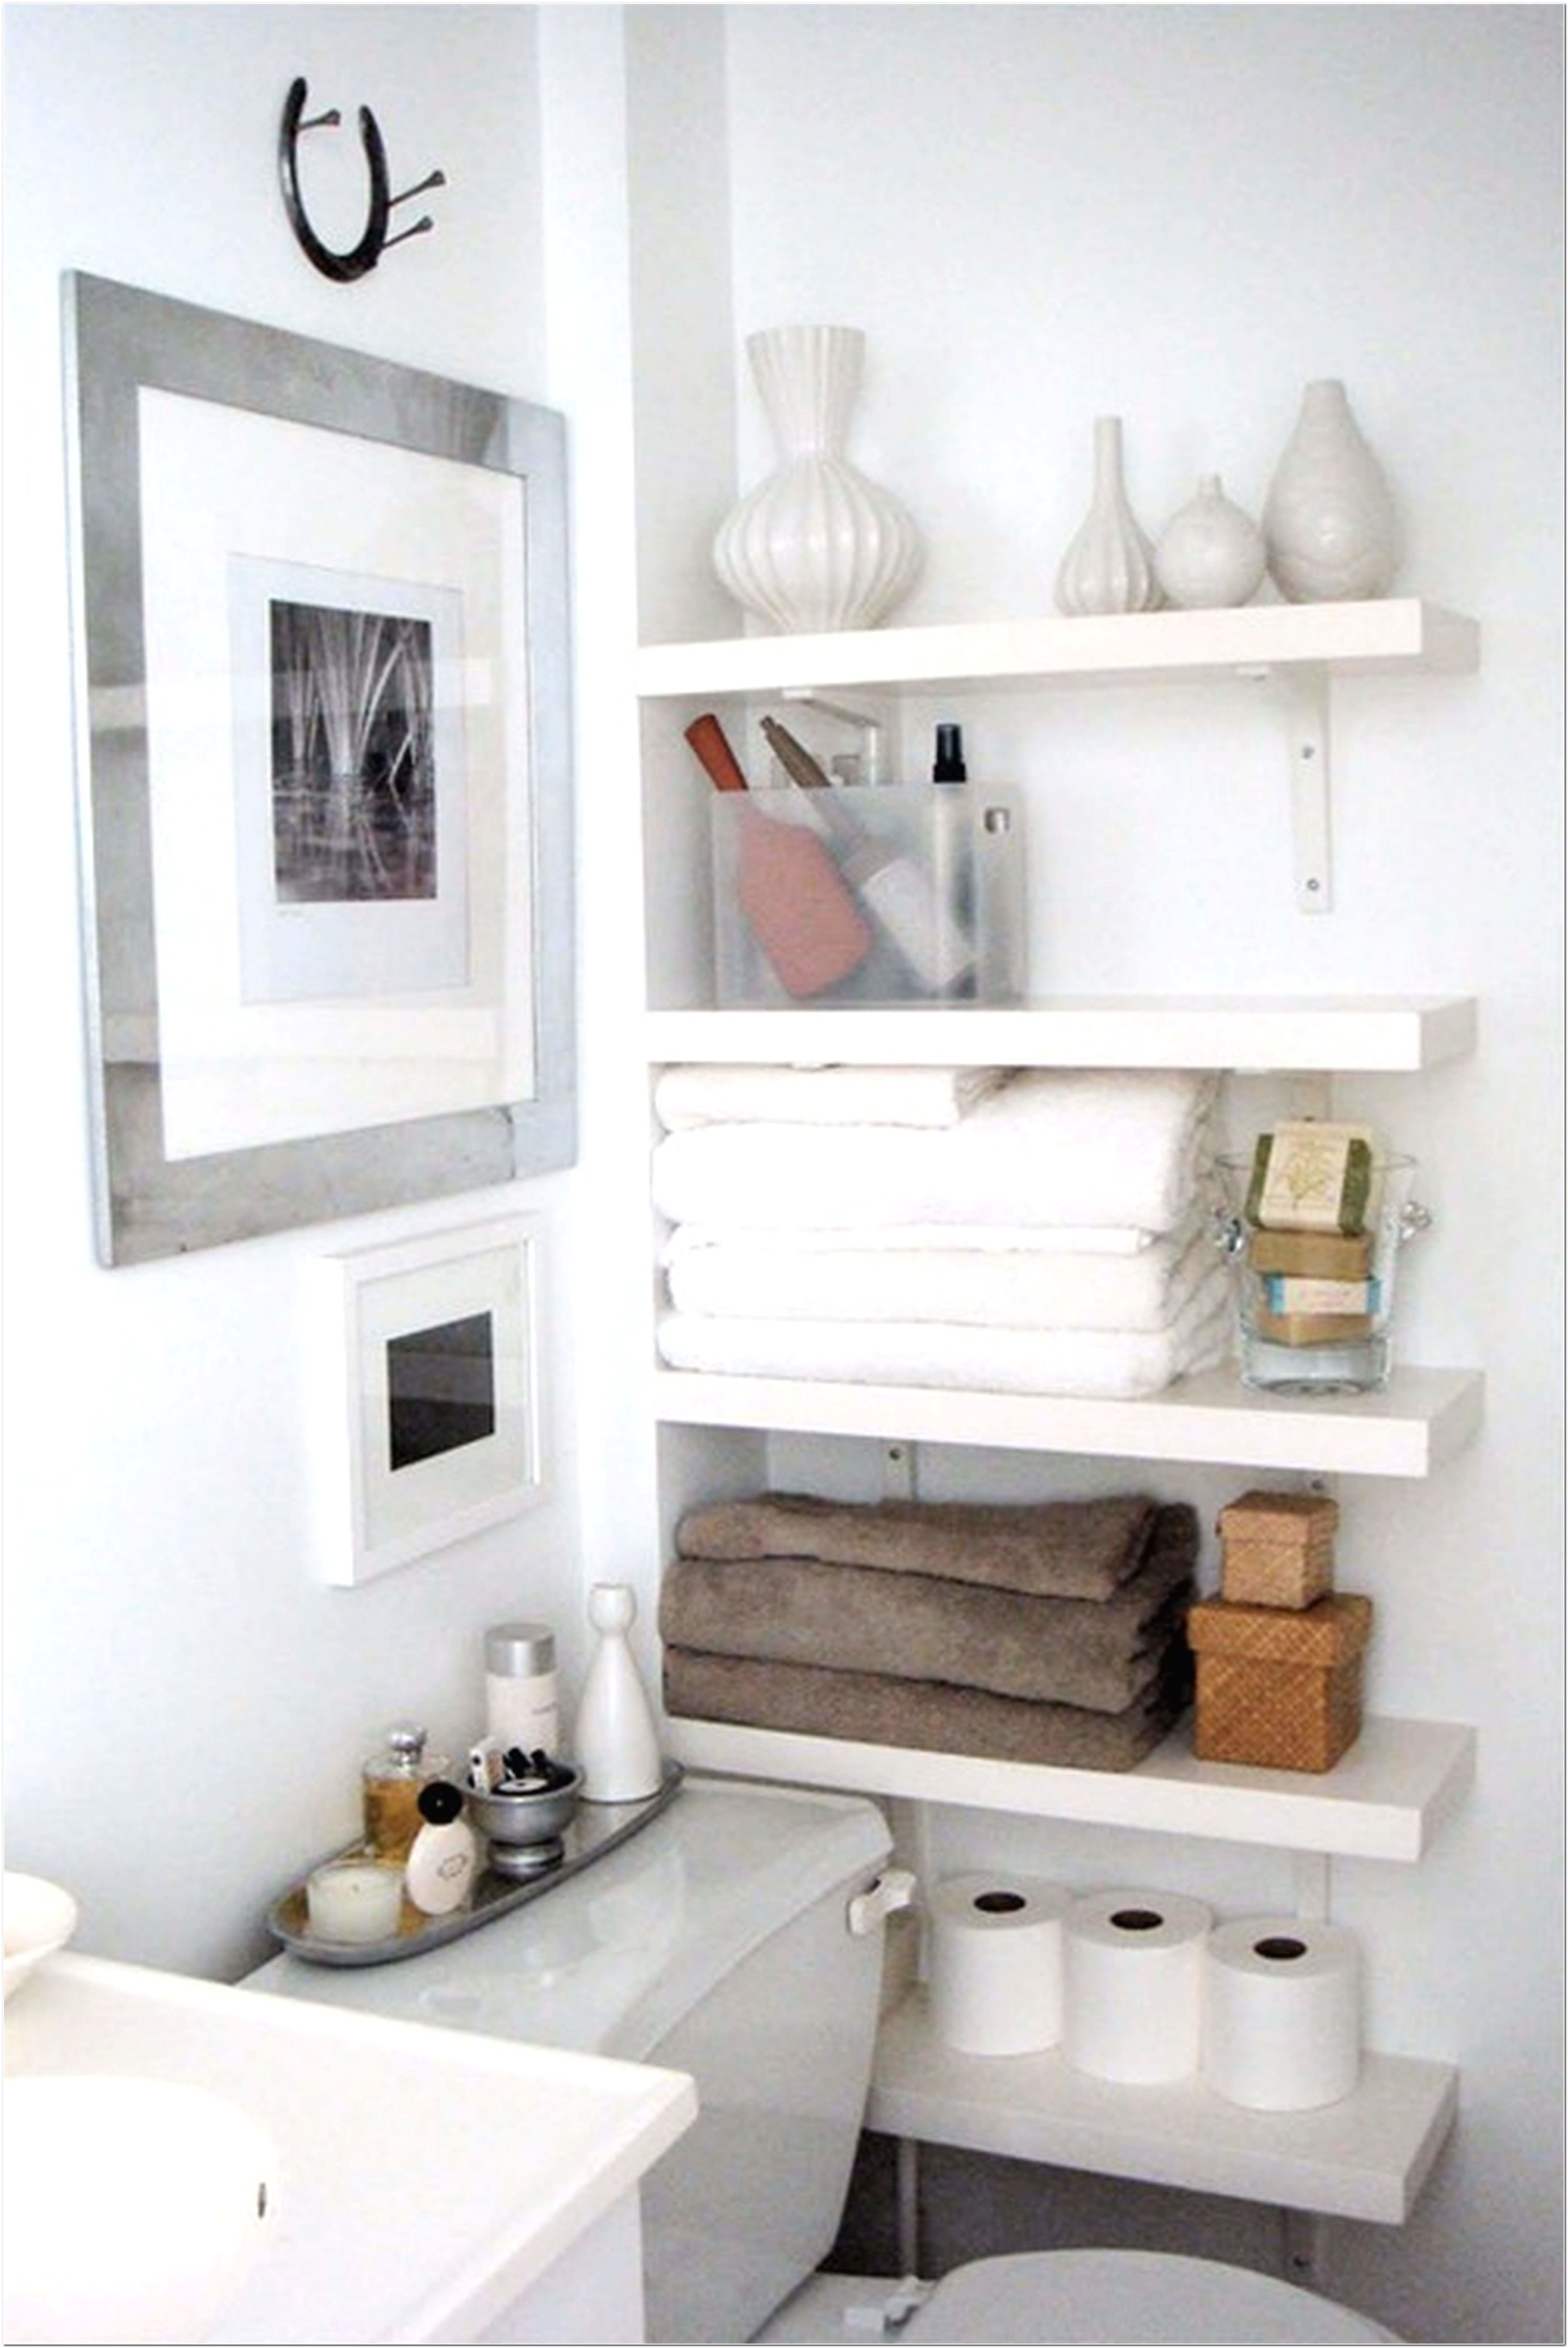 32 Incredible Bathroom Storage Ideas That You Should See regarding size 5077 X 7602